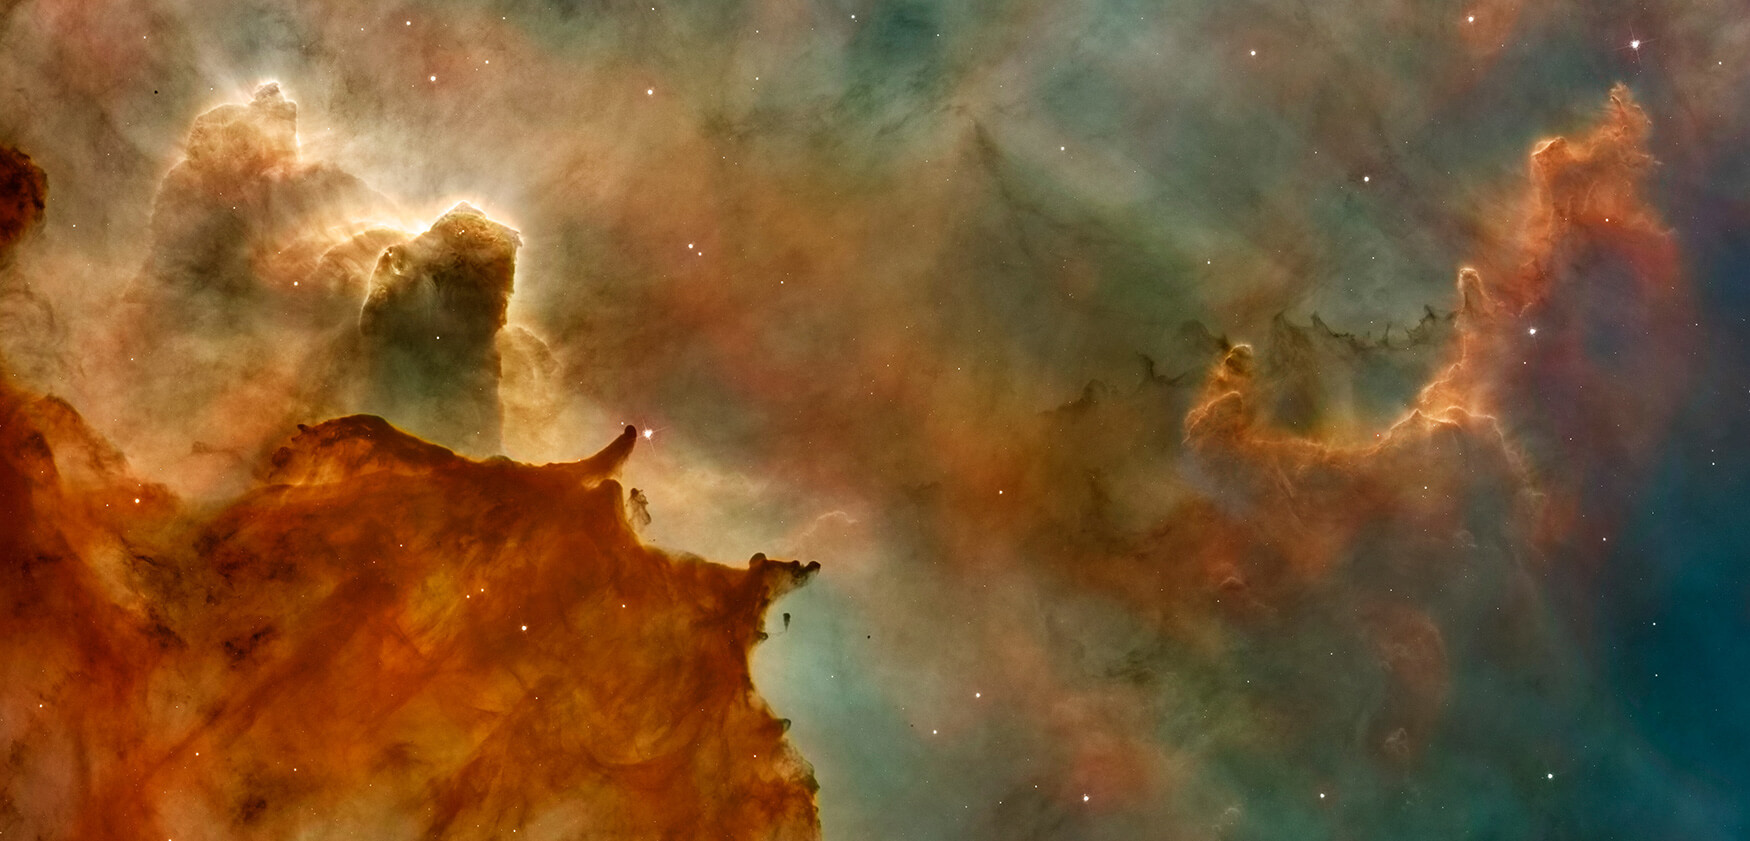 Hubble image of towering hydrogen clouds in the Carina nebula